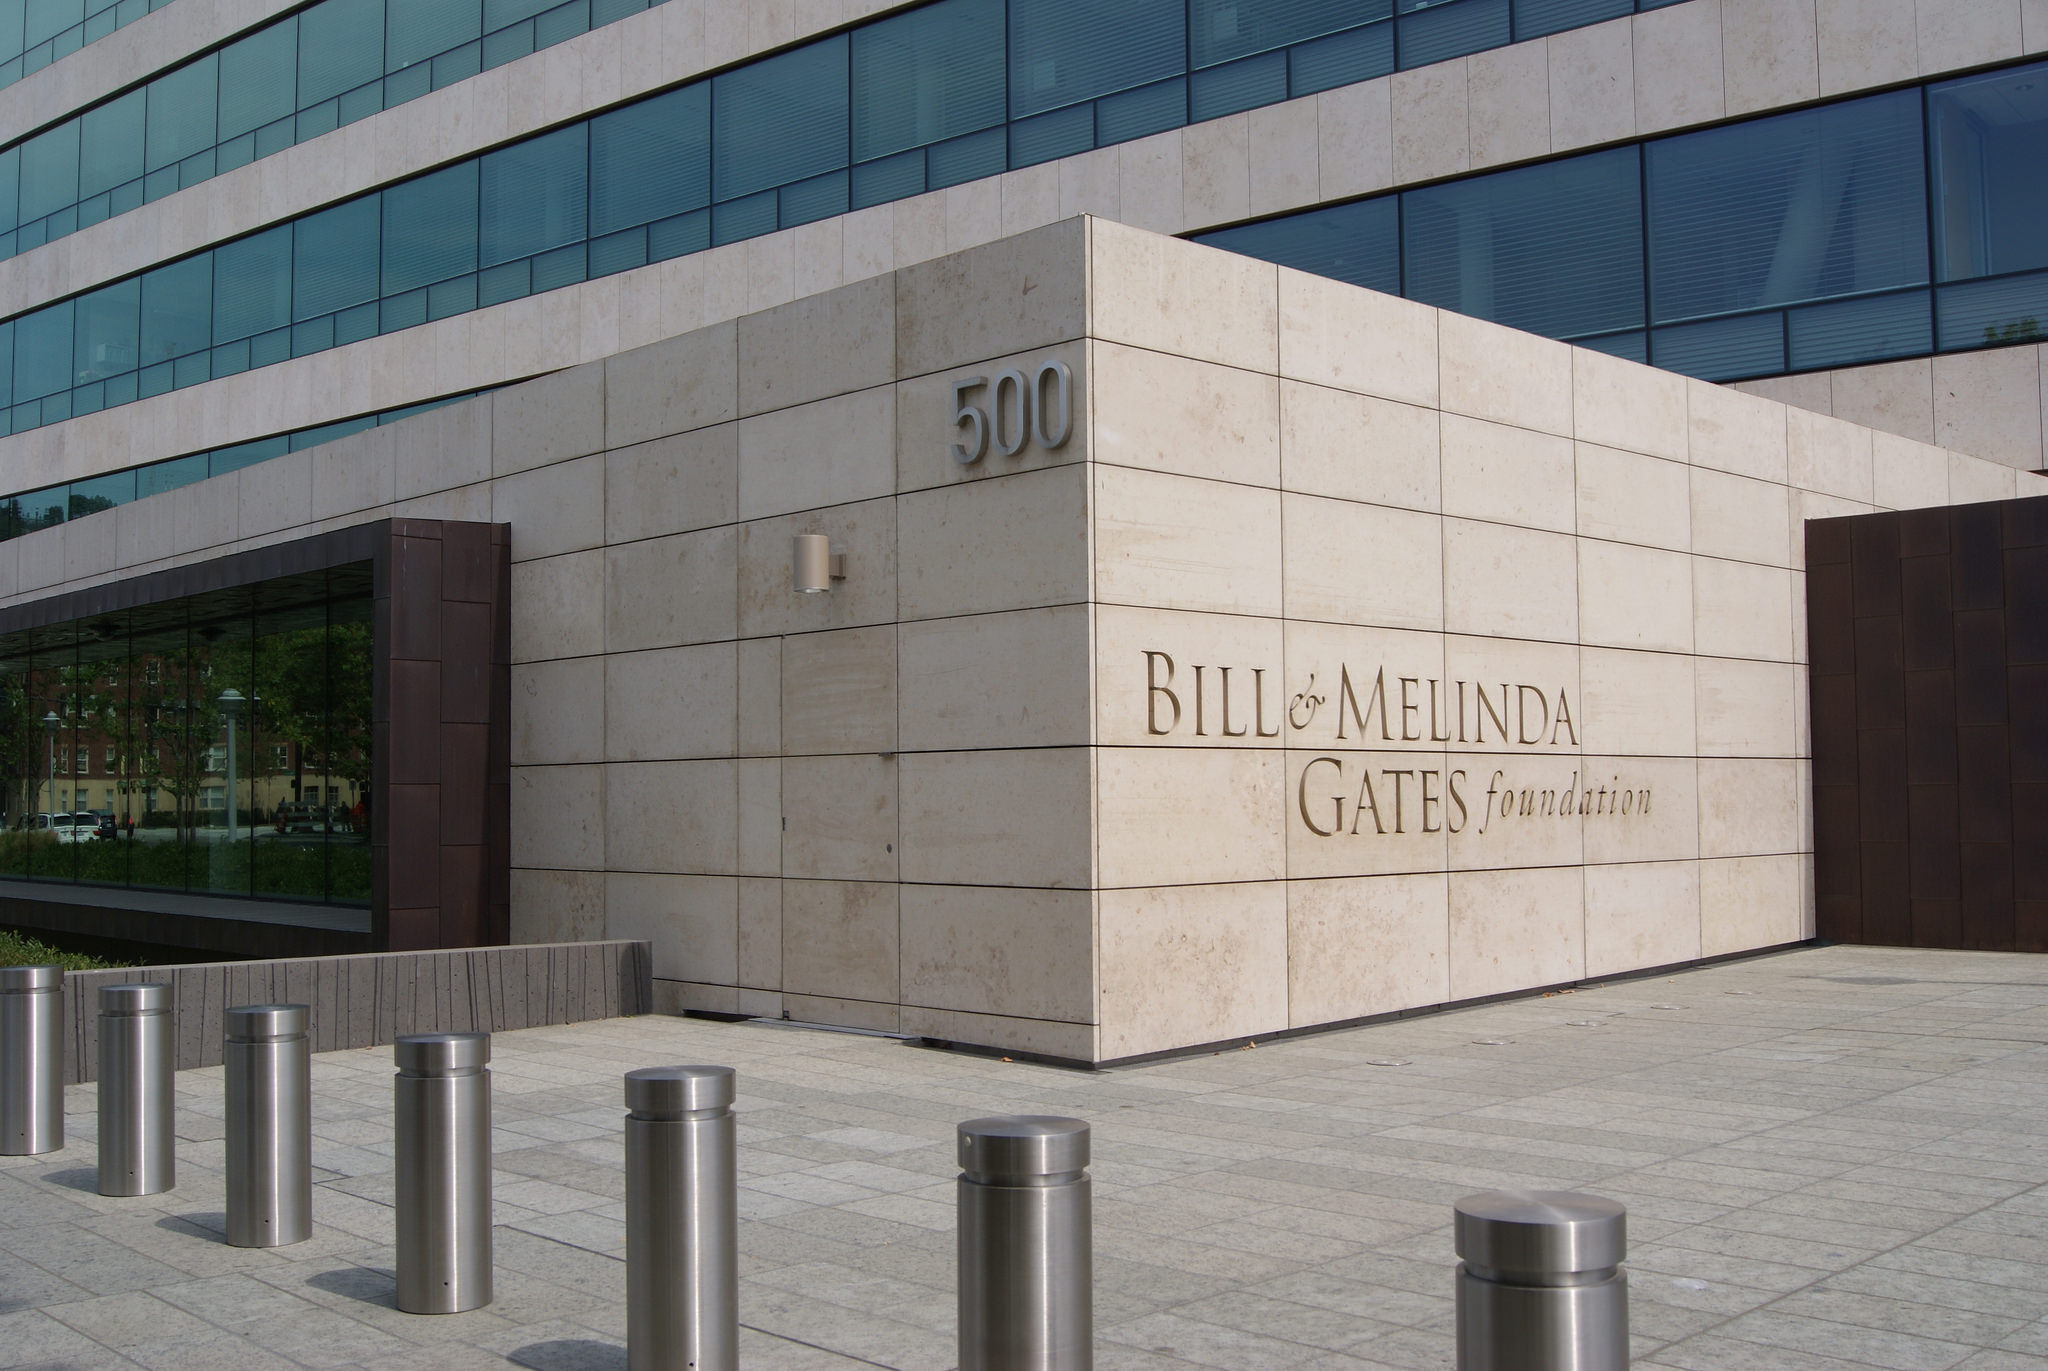 gates foundation research papers The gates foundation spends about $900 million a year on its global health programs, mostly on research that results in roughly 1400 research papers a.